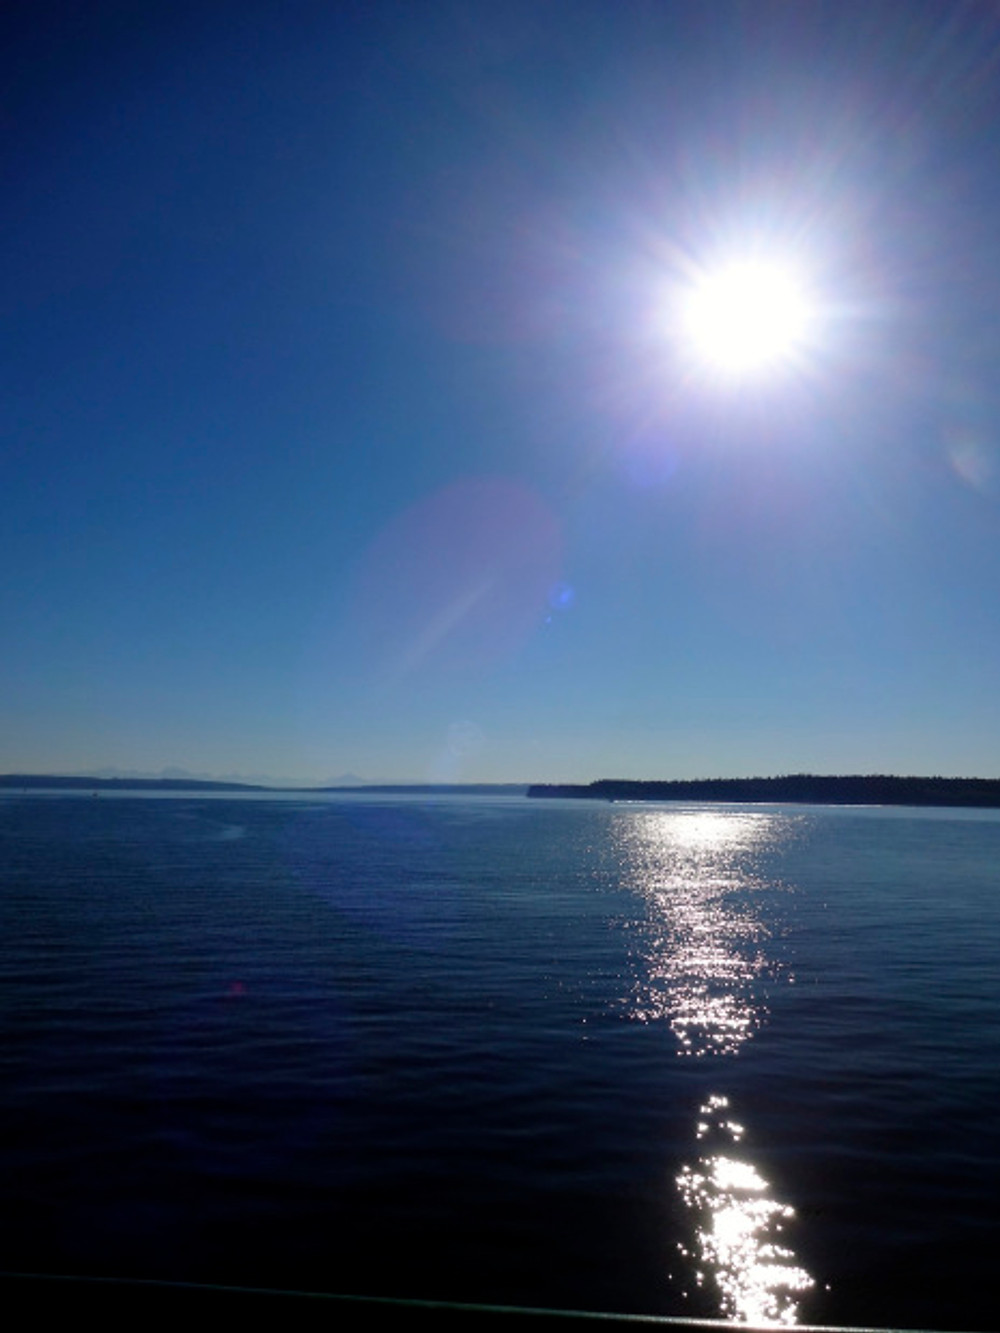 Definitely the most perfect day ever to be out on the water - not too hot, not too cool, not too crowded!